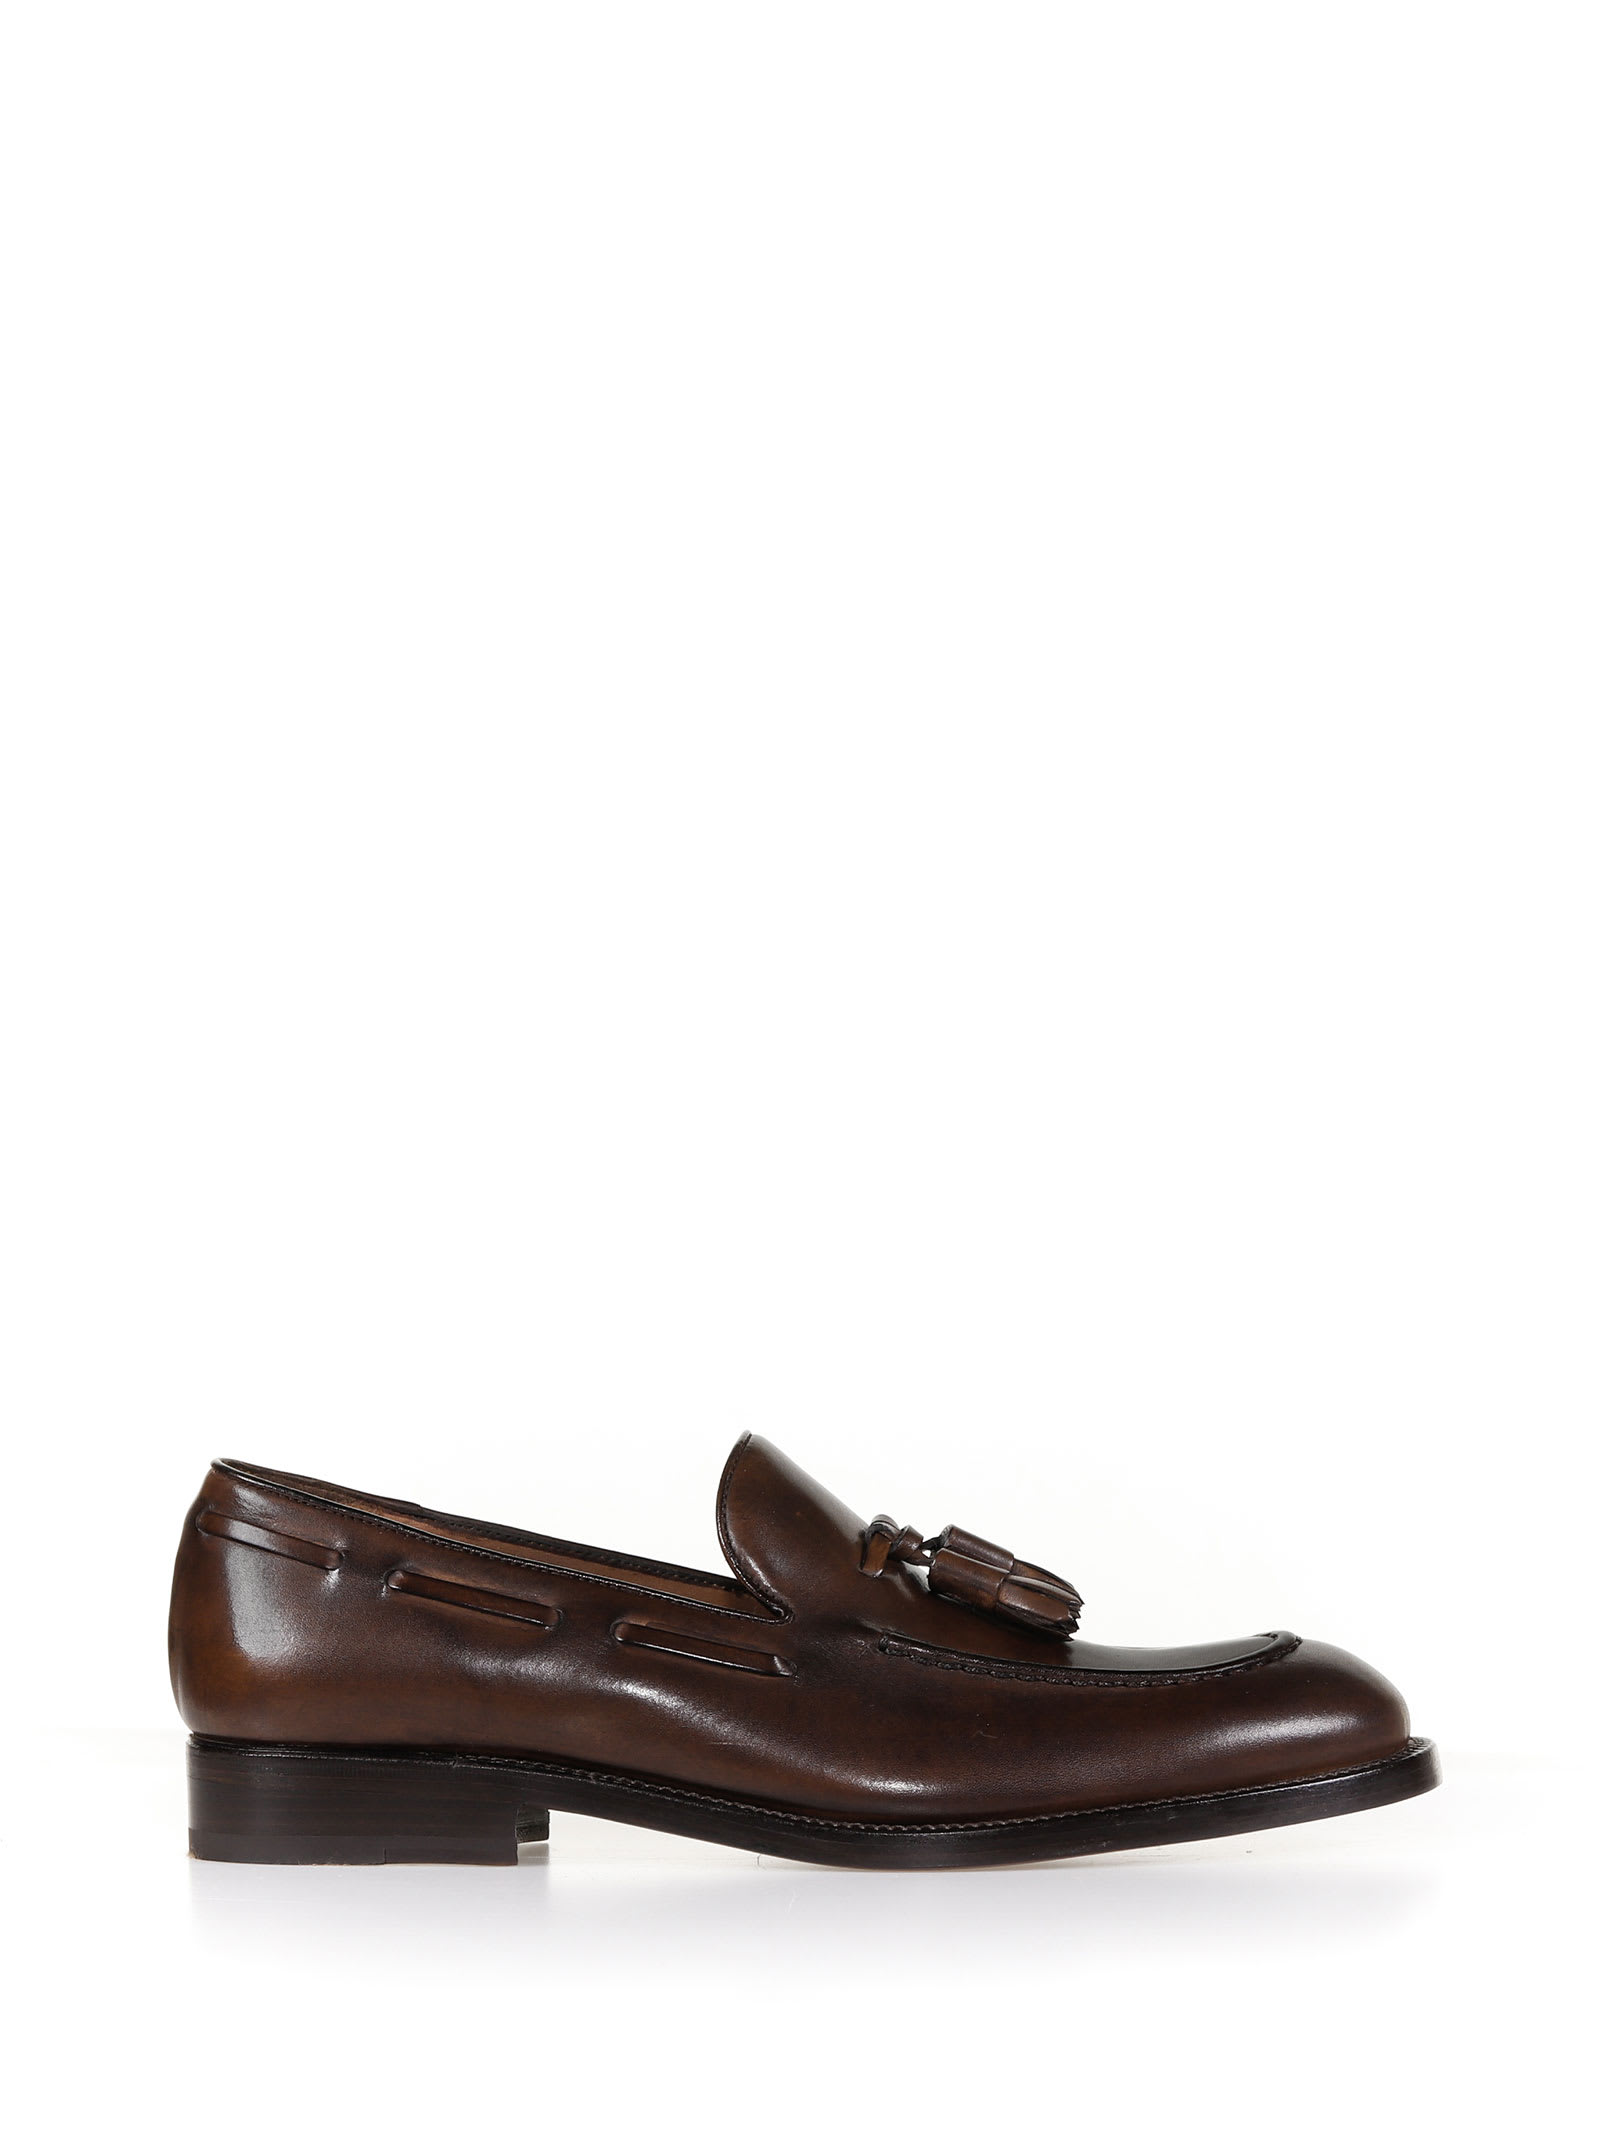 Loafer With Tassels In Leather